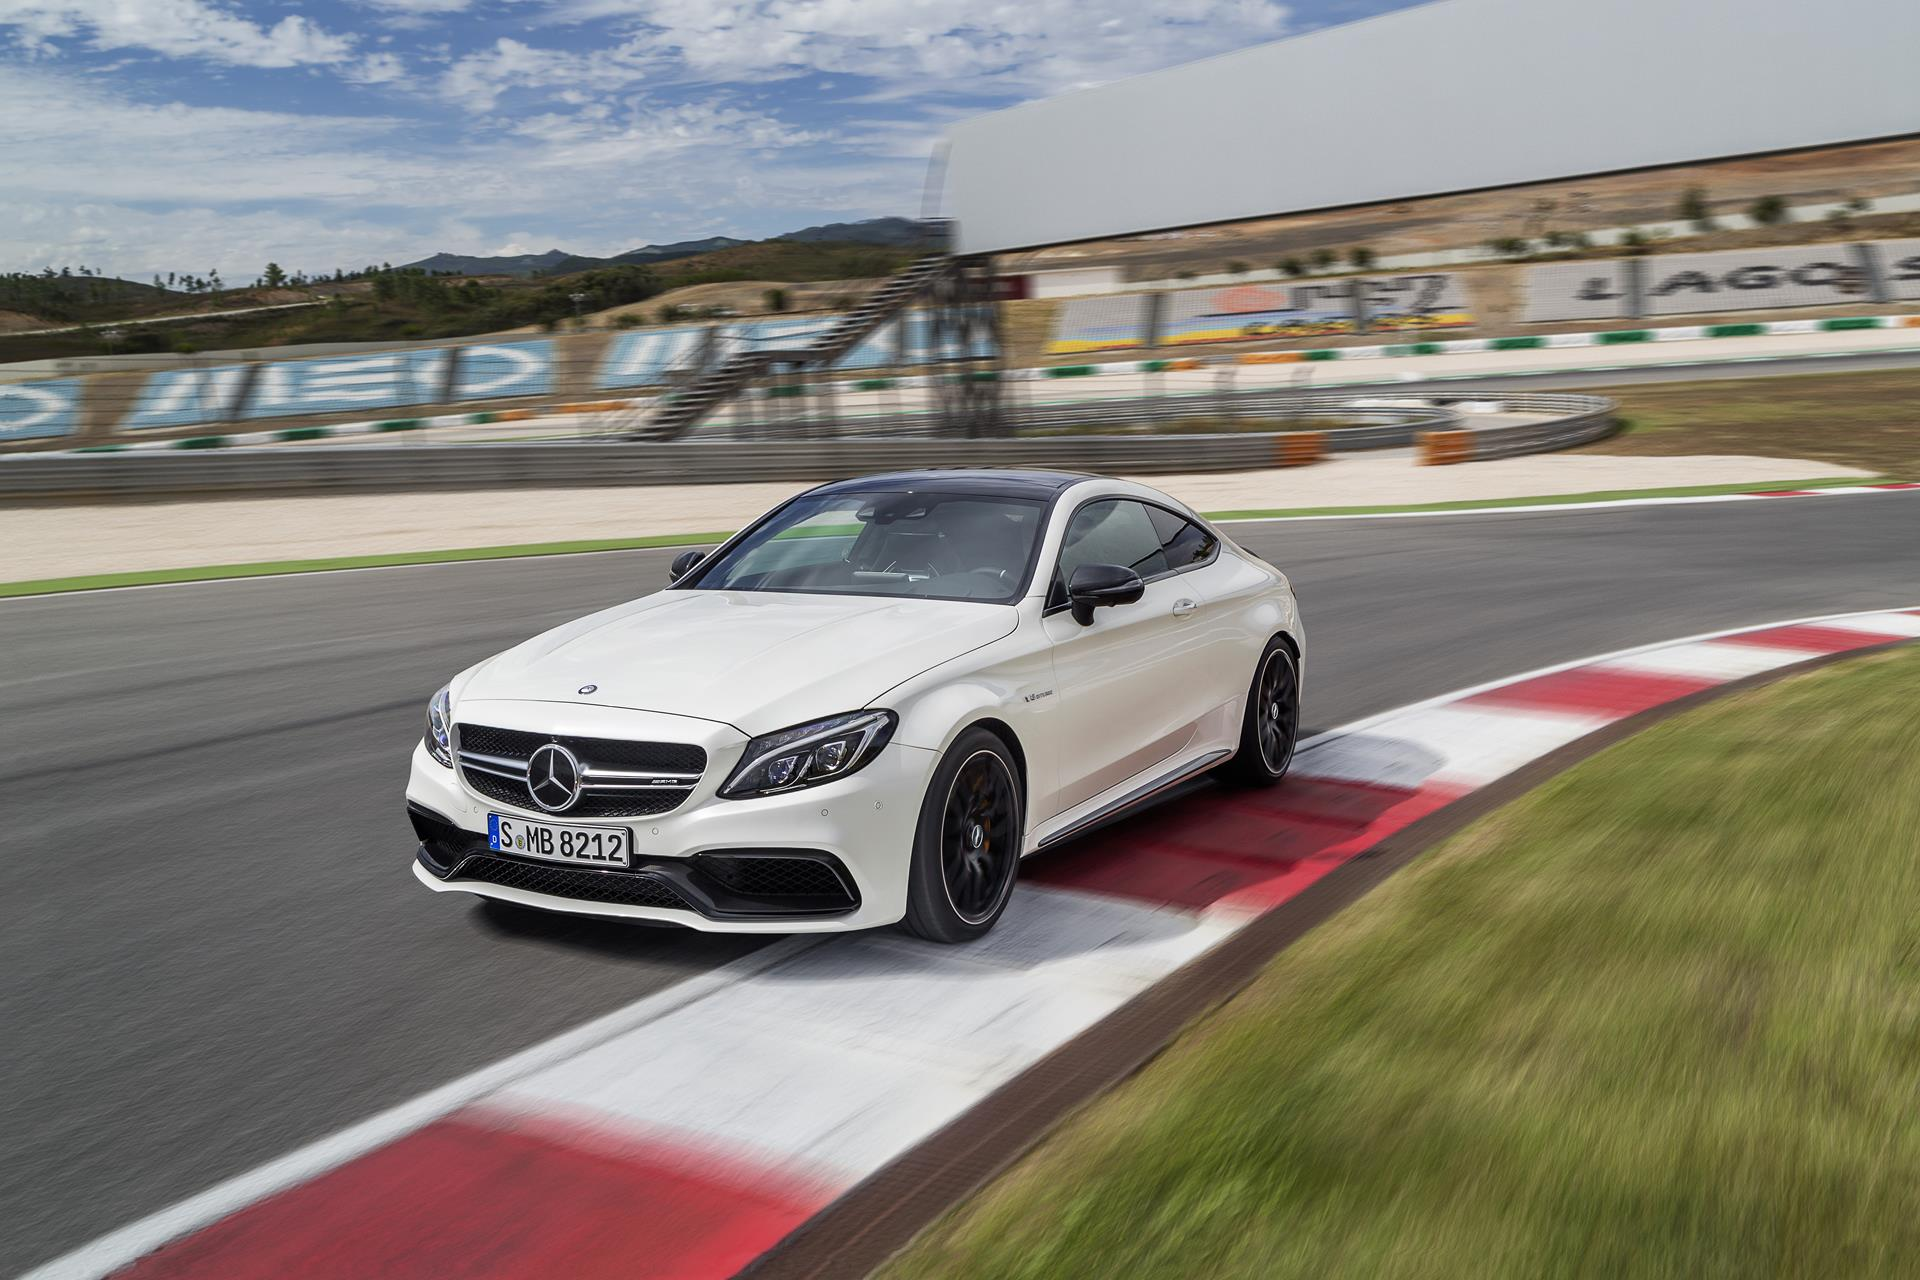 2017 mercedes benz c63 amg news and information for Facts about mercedes benz